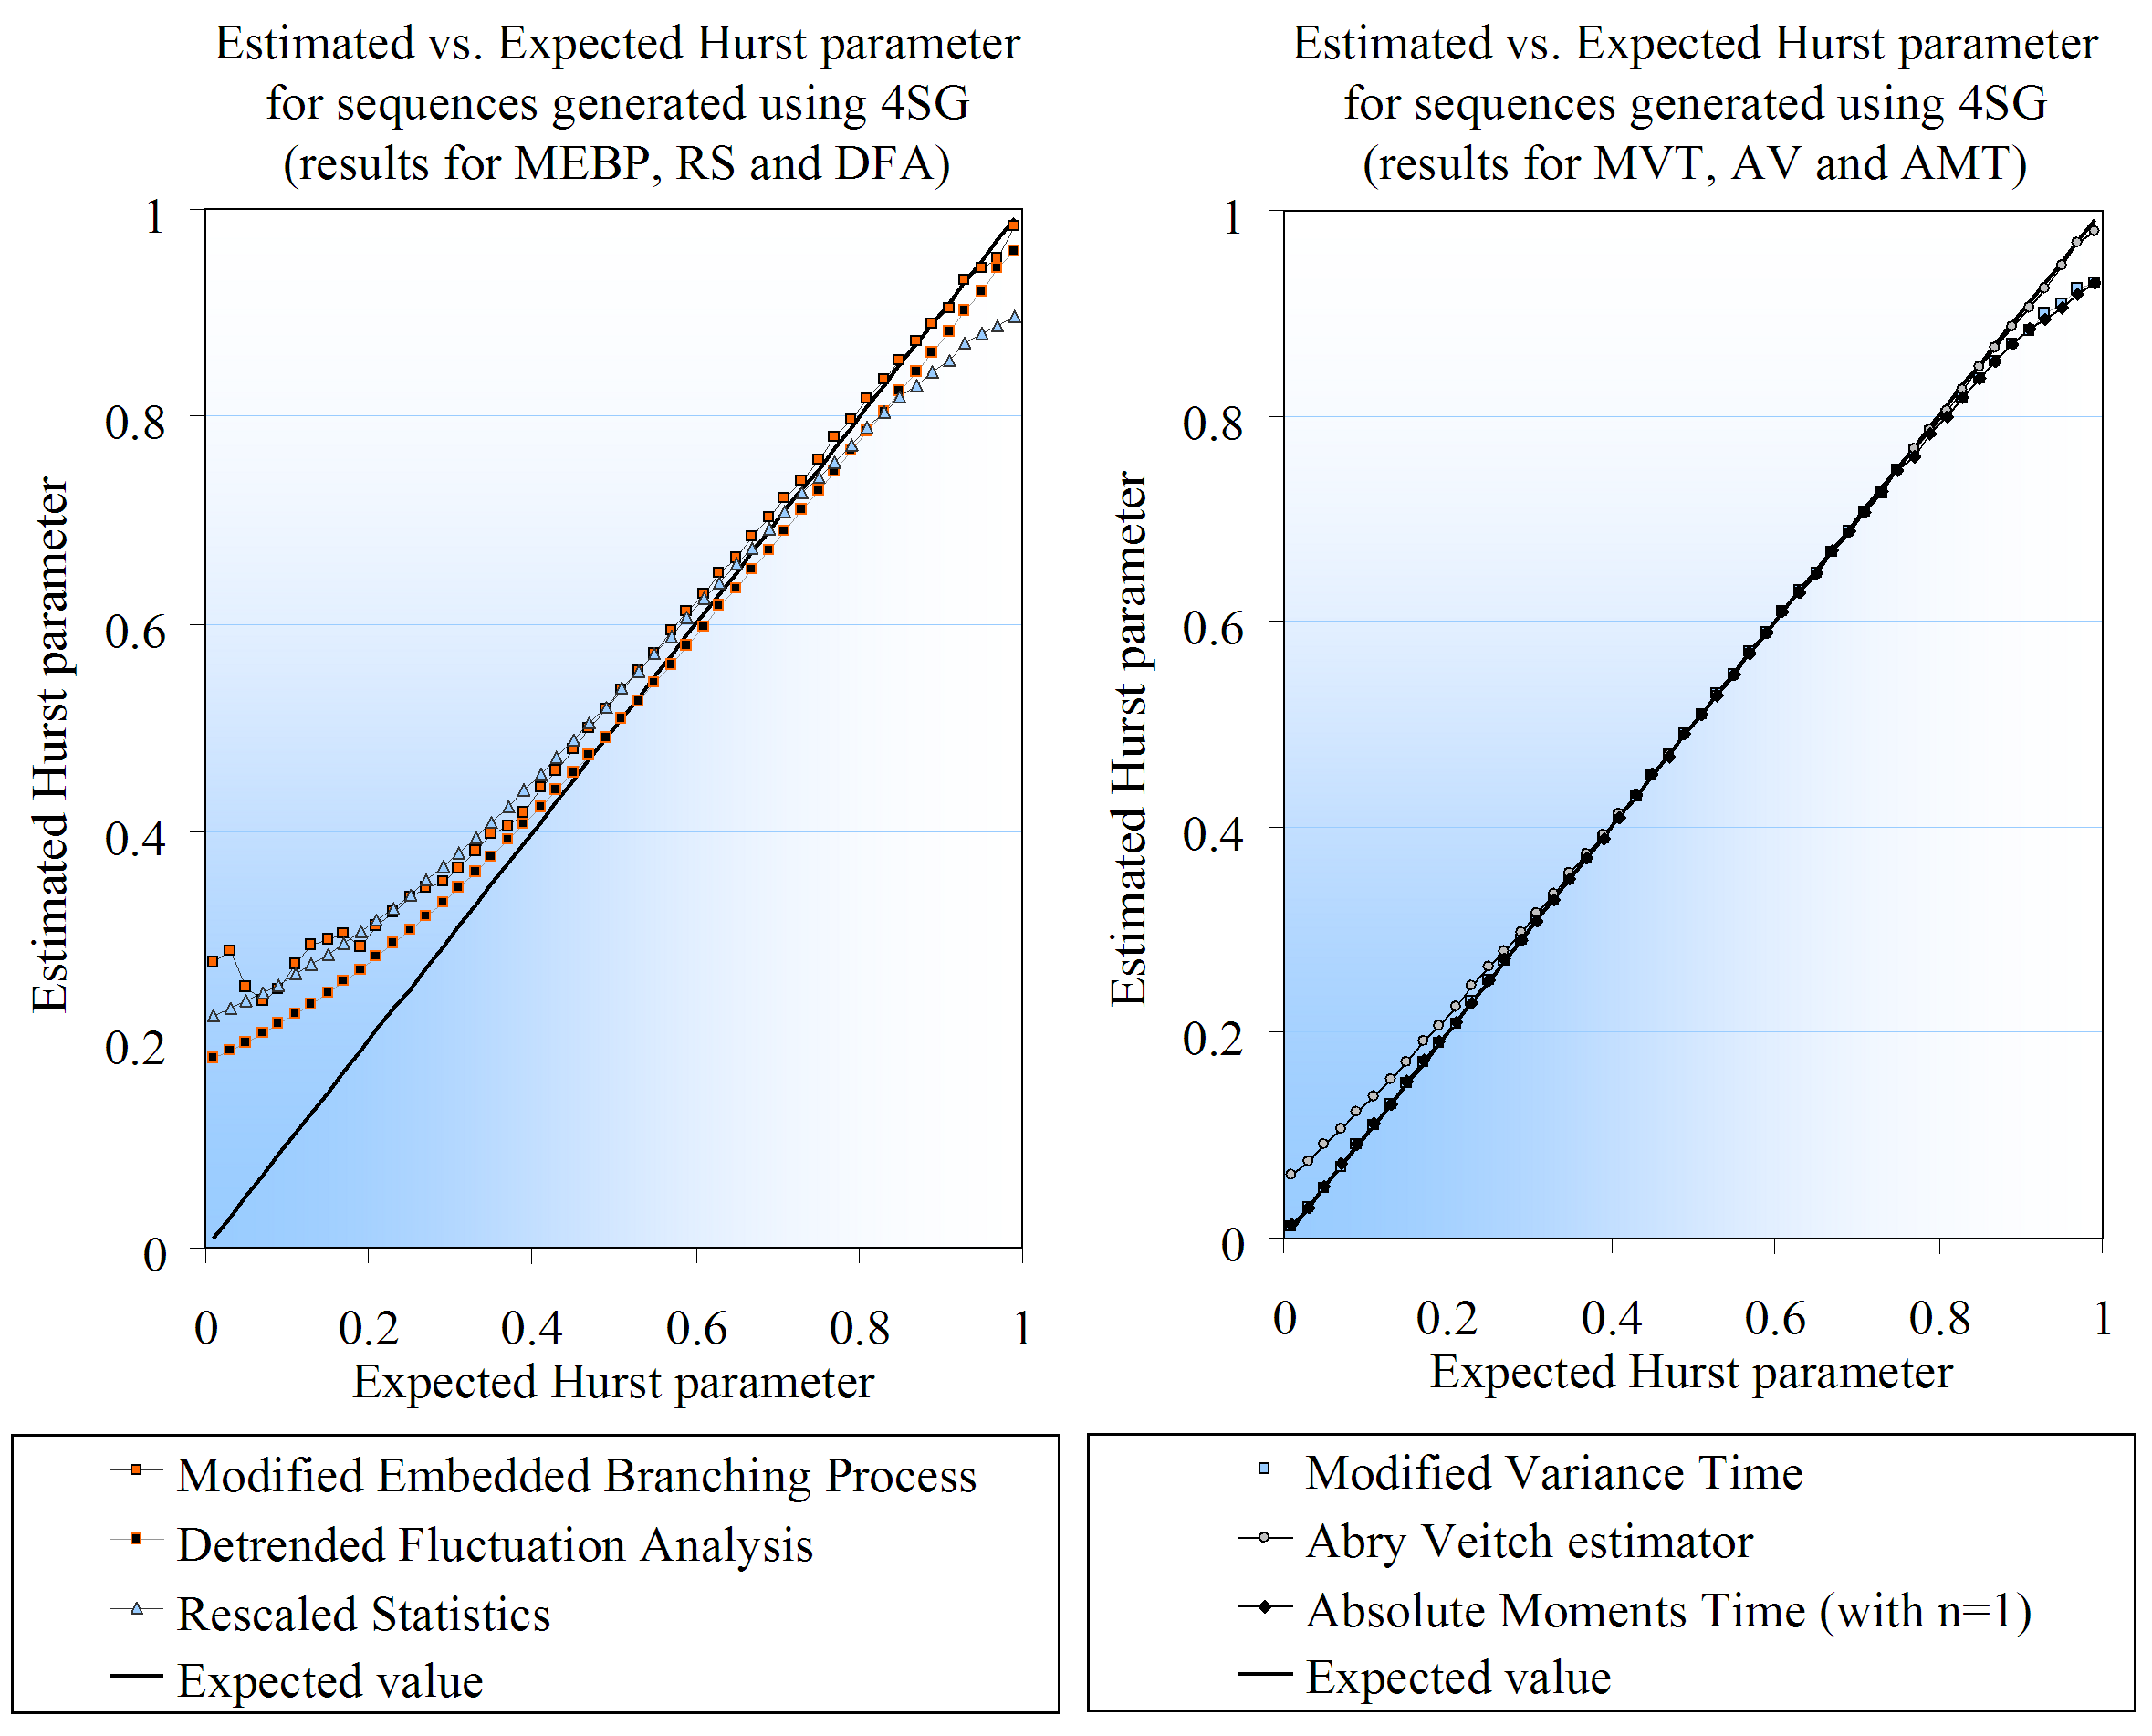 Figure 4.16: Charts where the estimated Hurst parameter values are plotted against their expected value, for different estimators. In this particular case, the data series were generated using 4SG.